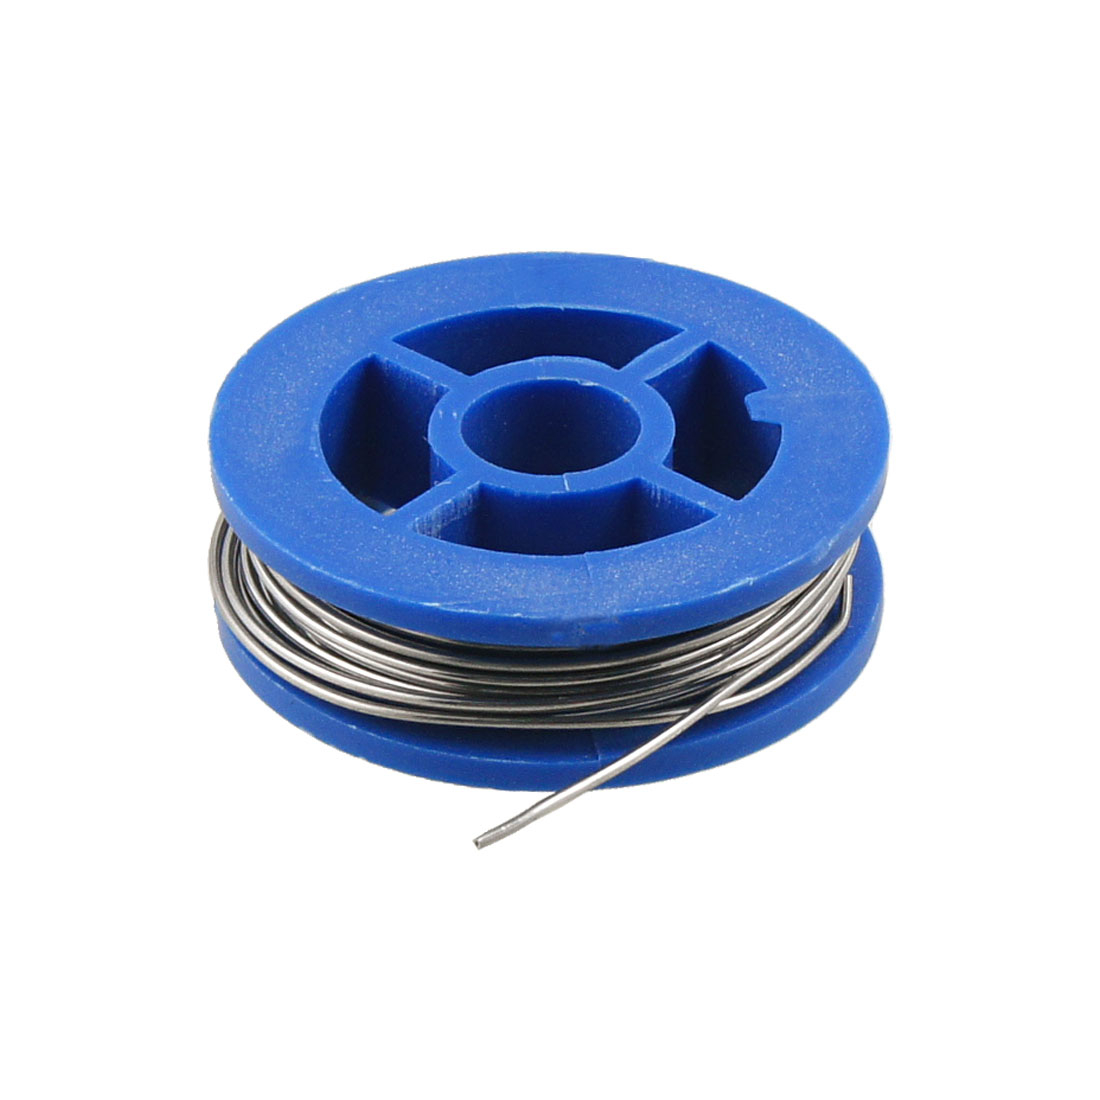 0.8mm 10g 63/37 Tin Lead Roll Solder Soldering Wire Reel Spool